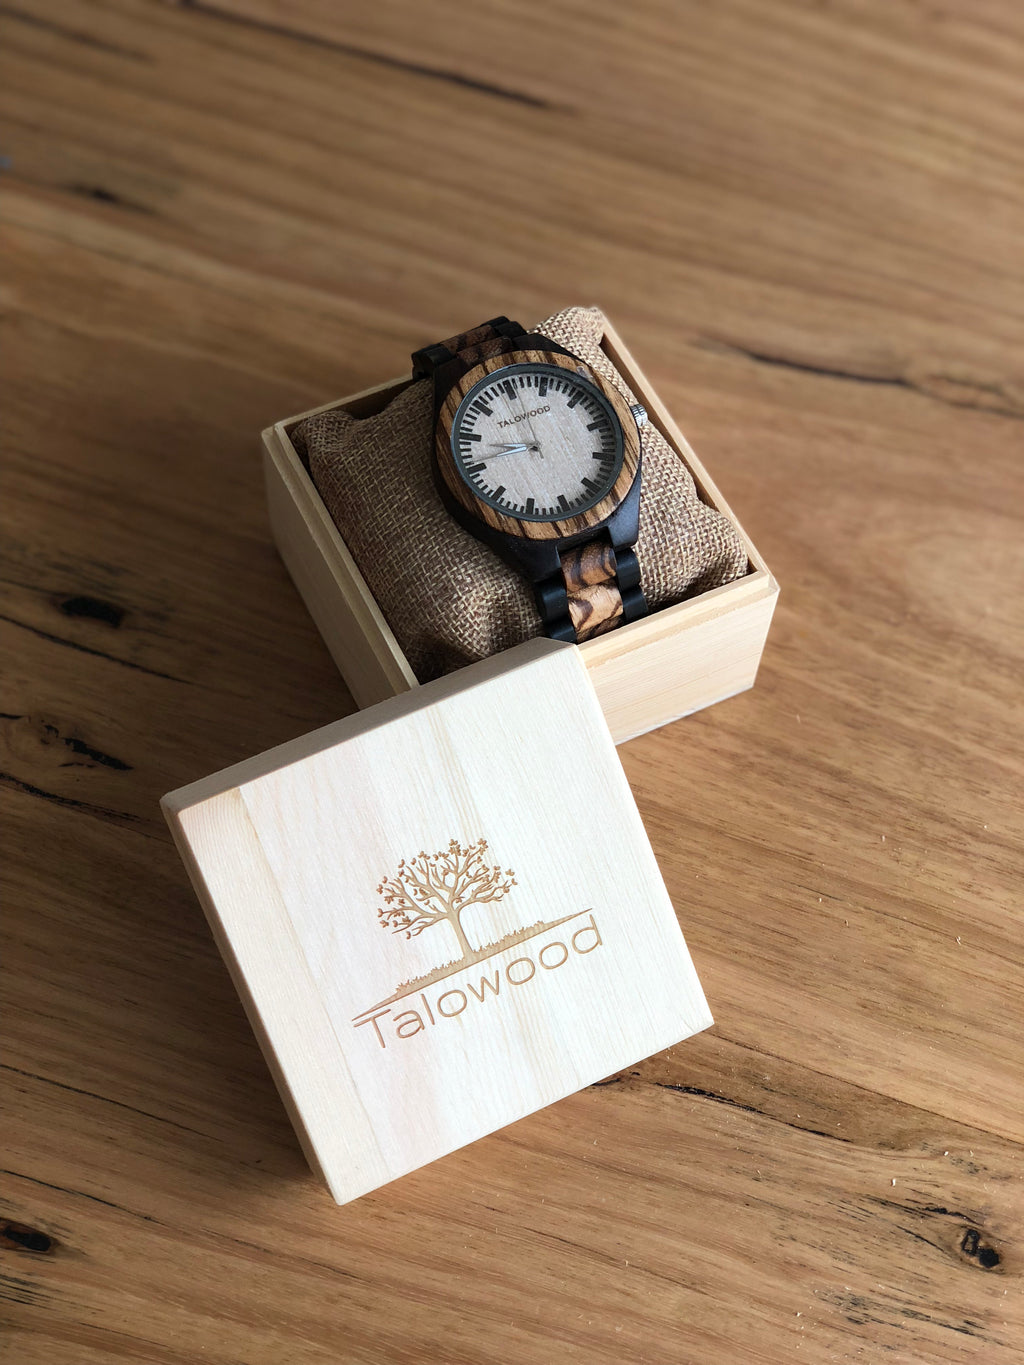 THE INNOVATOR ZEBRAWOOD HANDMADE WATCH MENS